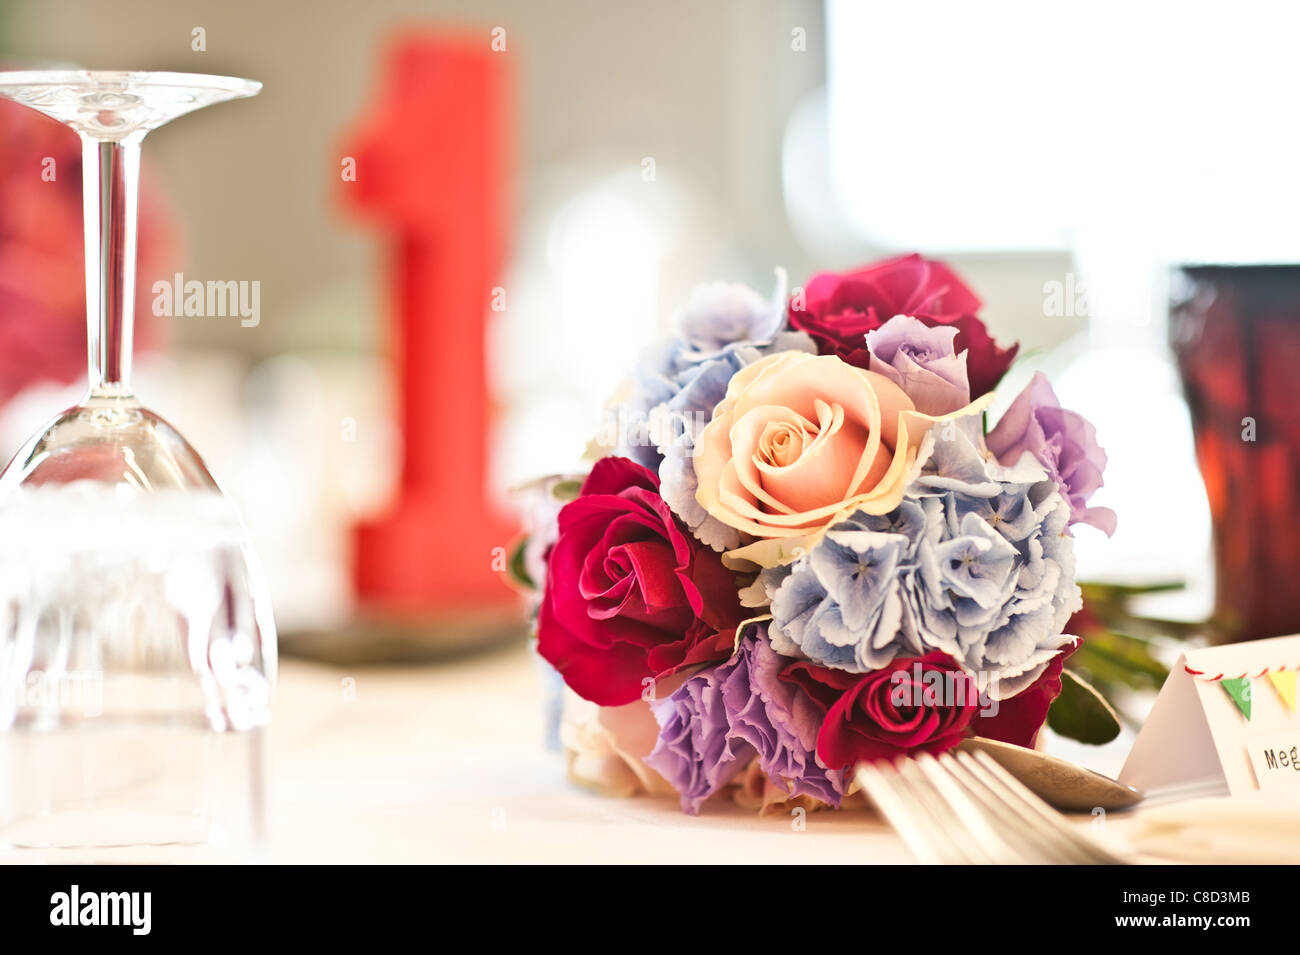 a bride's wedding bouquet of flowers - Stock Image